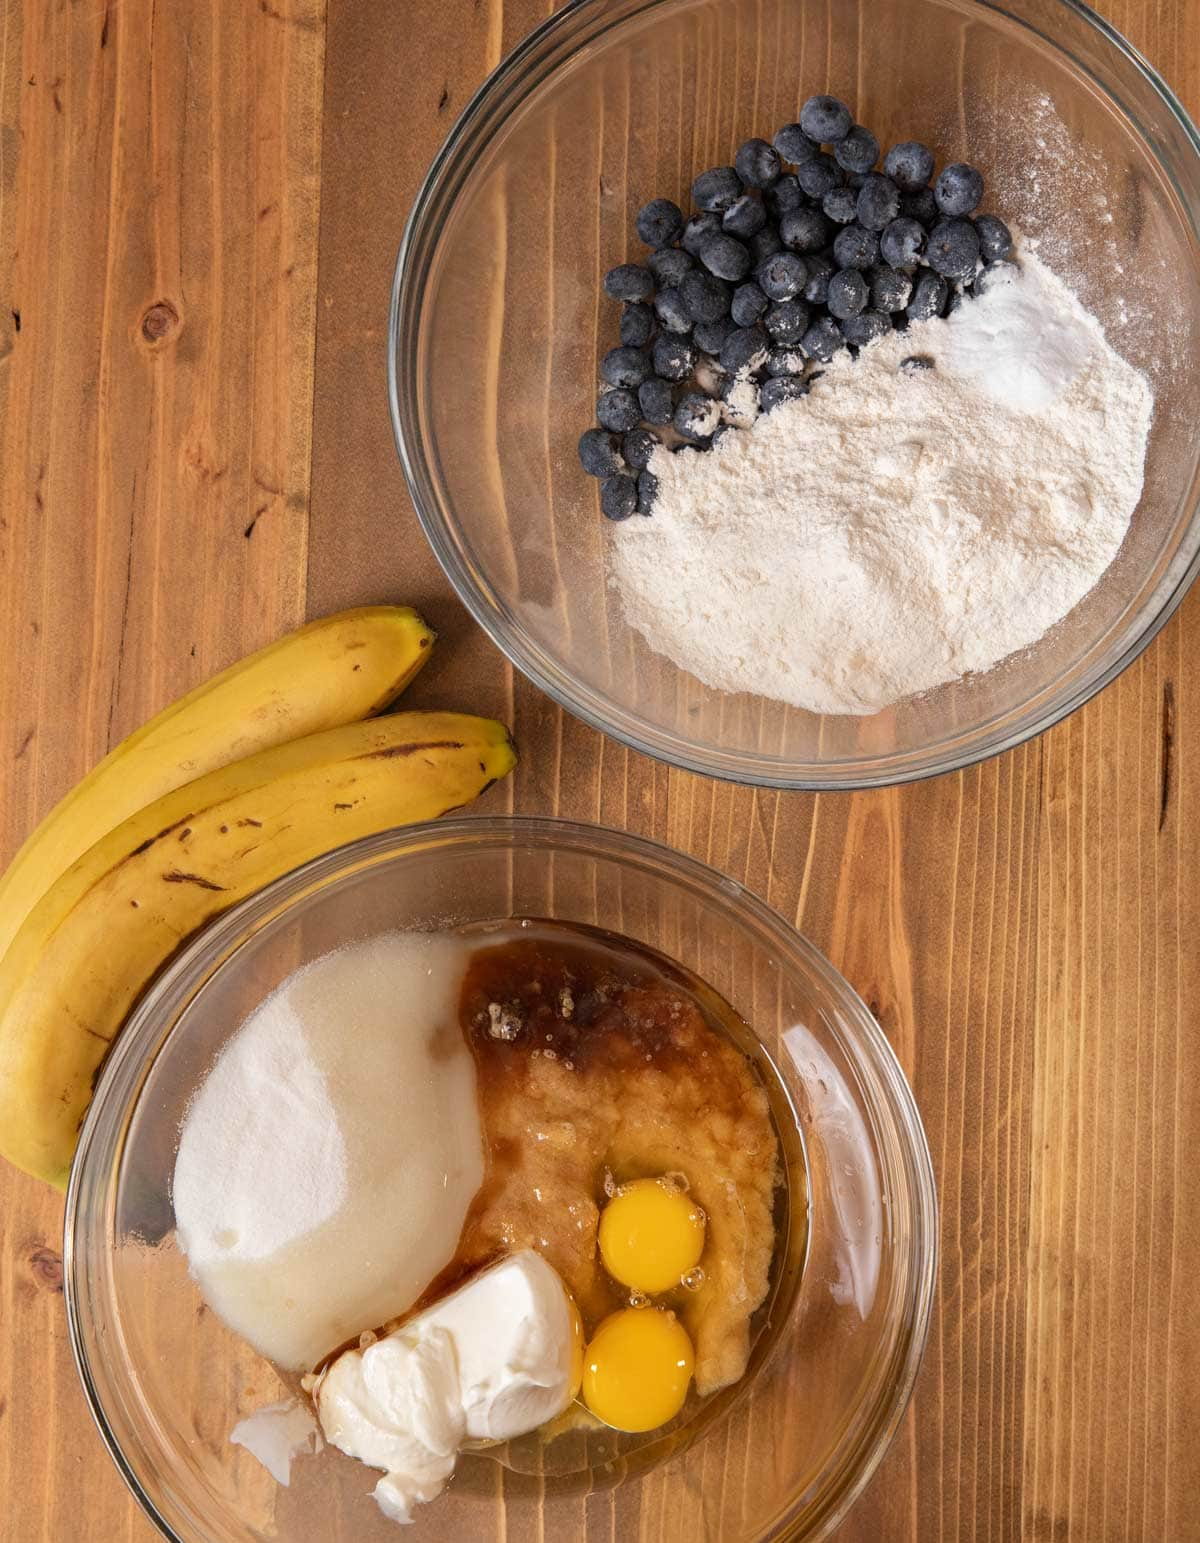 Blueberry Banana Bread ingredients in mixing bowls